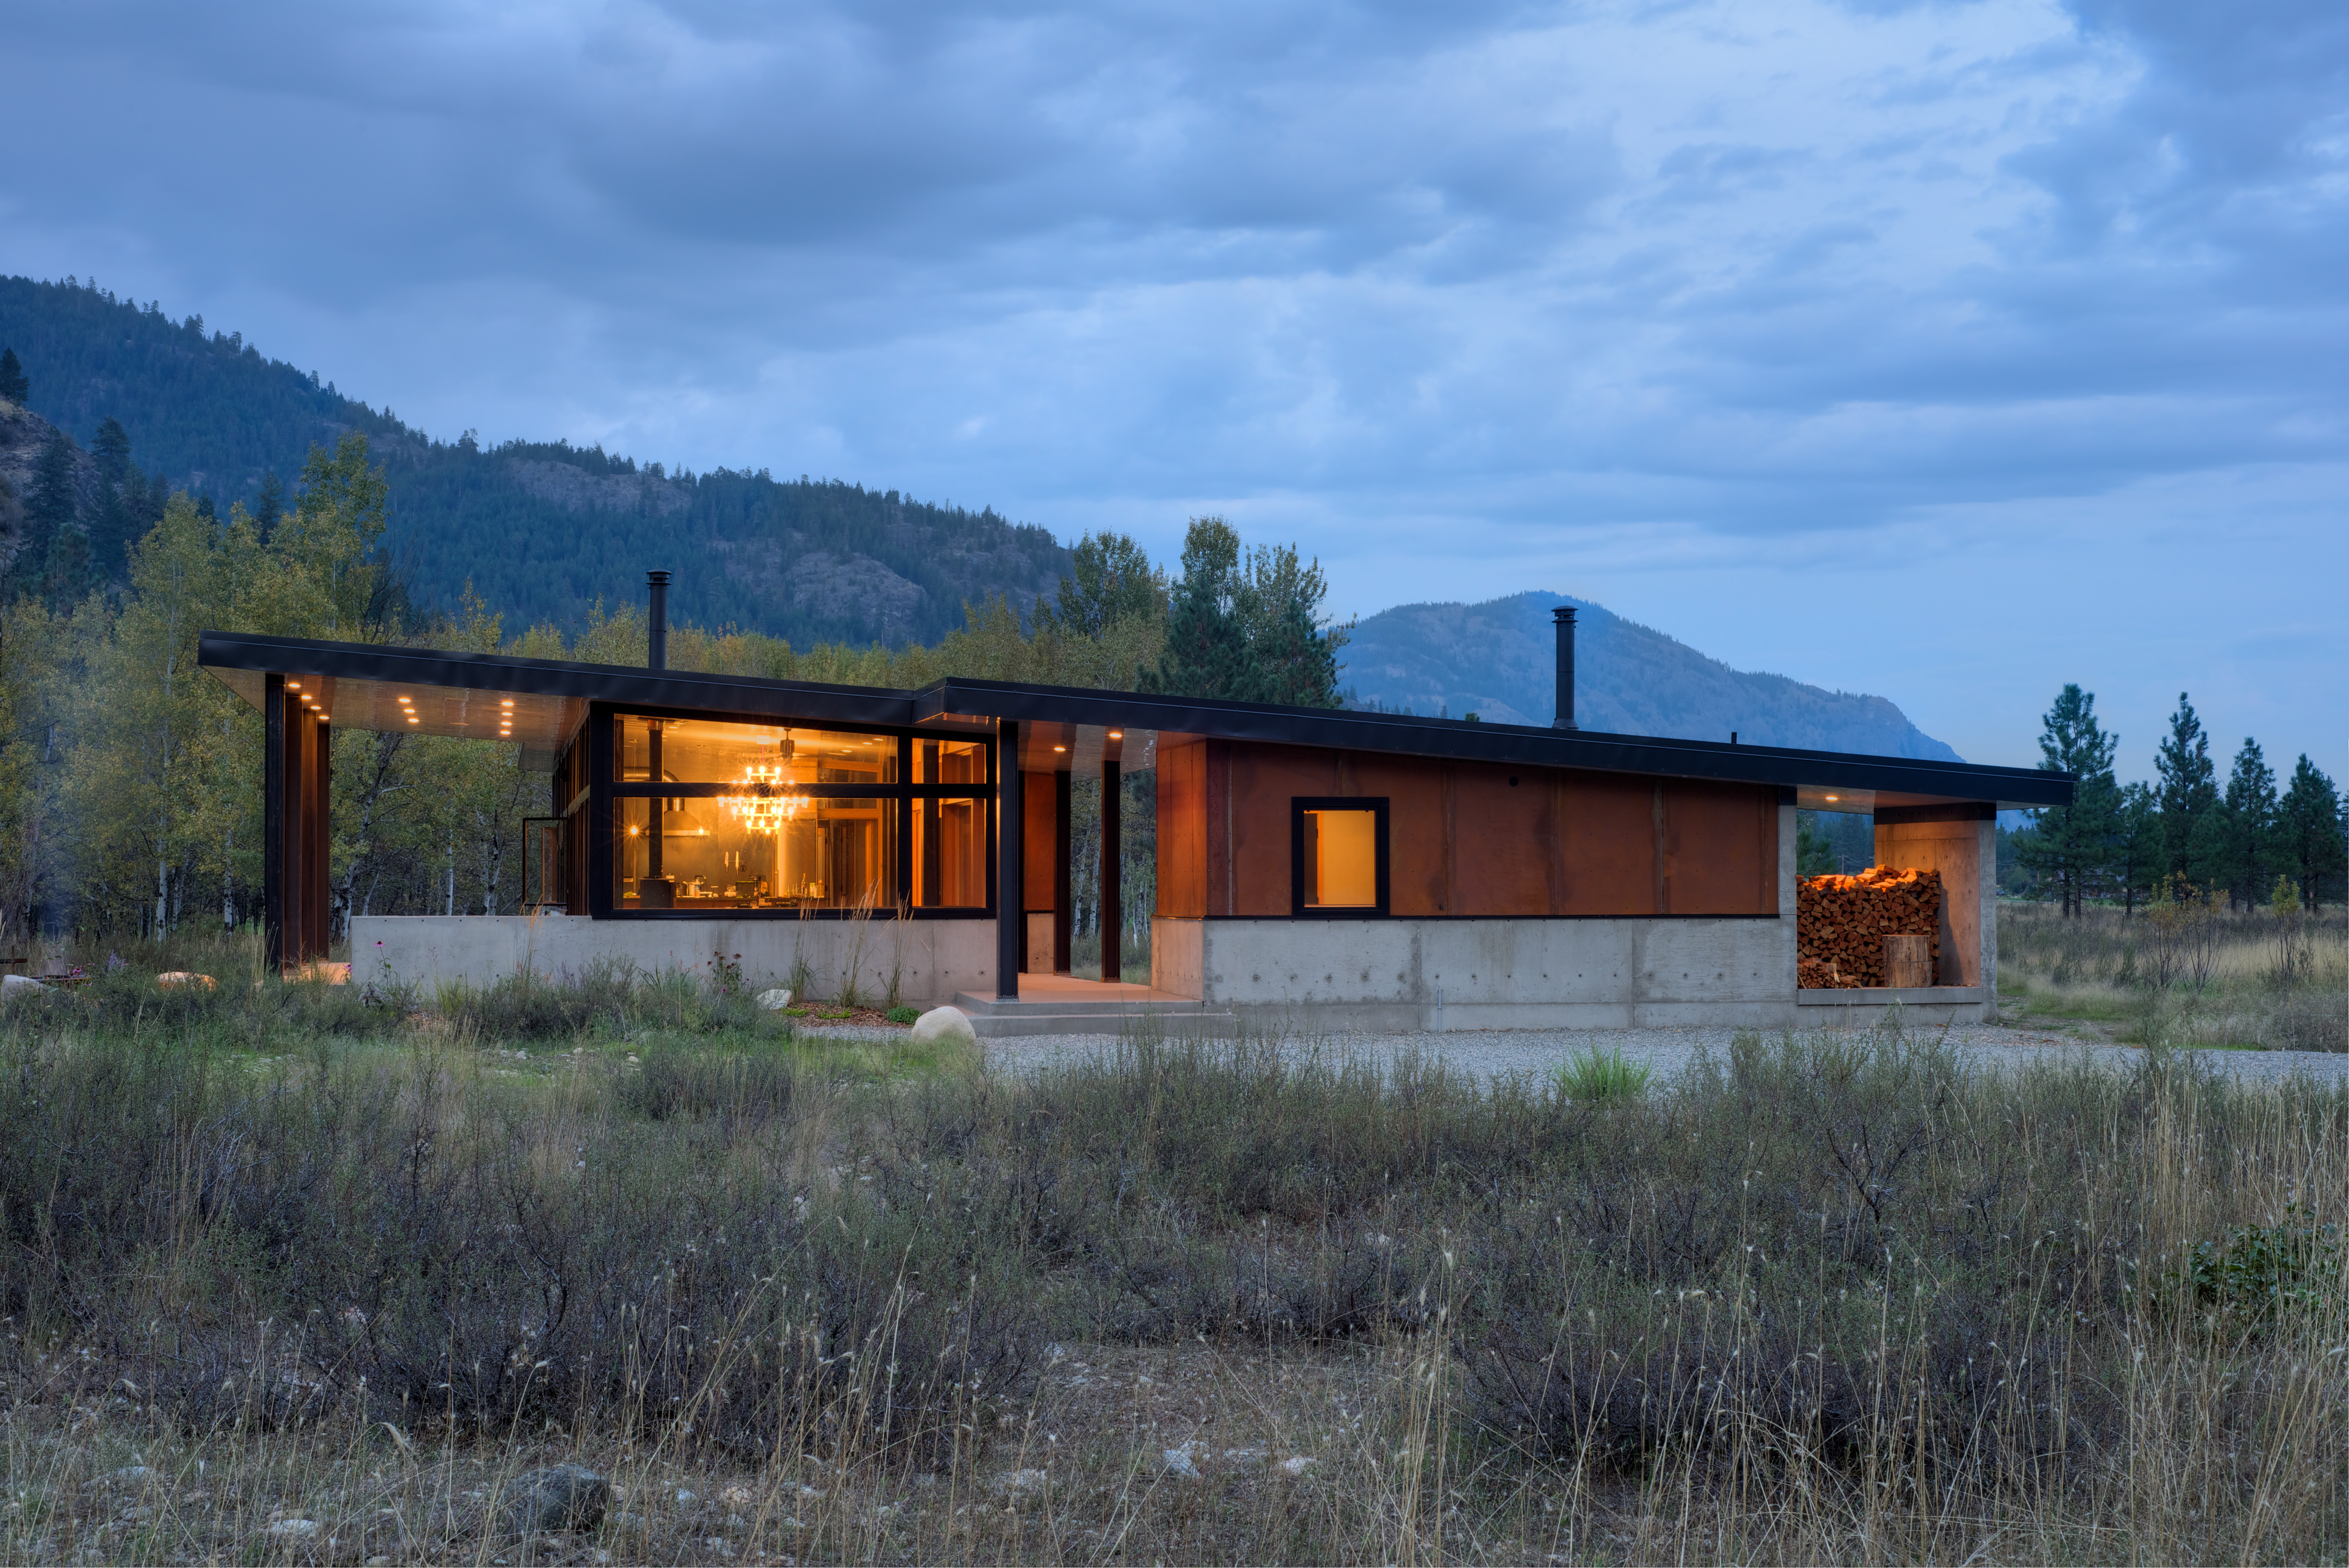 House in the Washington mountains with a separate sauna room